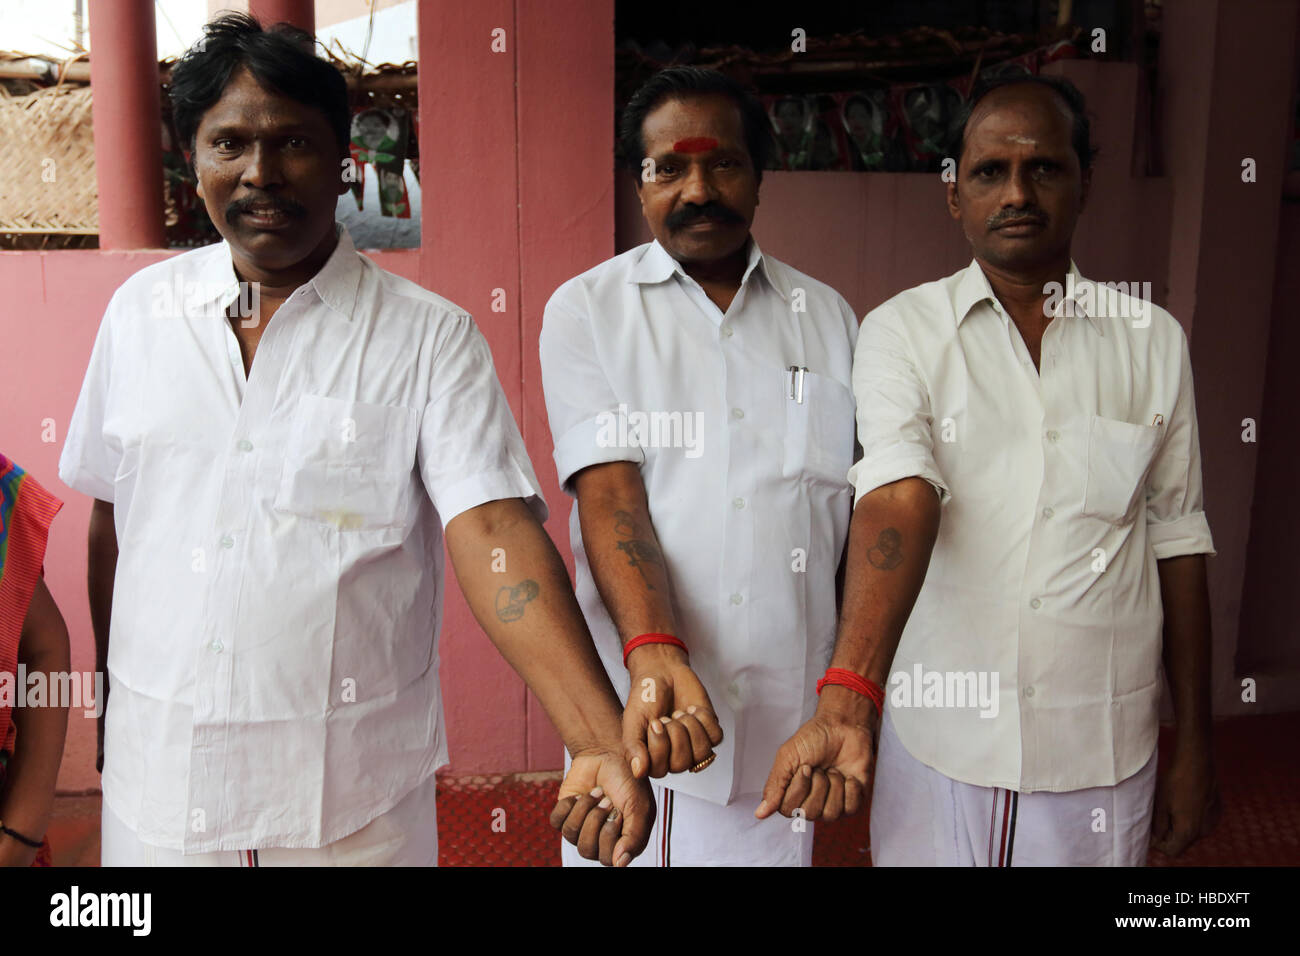 Devotees of Jayalalitha Jayaraman, former actress, state minister of Tamil Nadu, pose with tattoos of their political - Stock Image